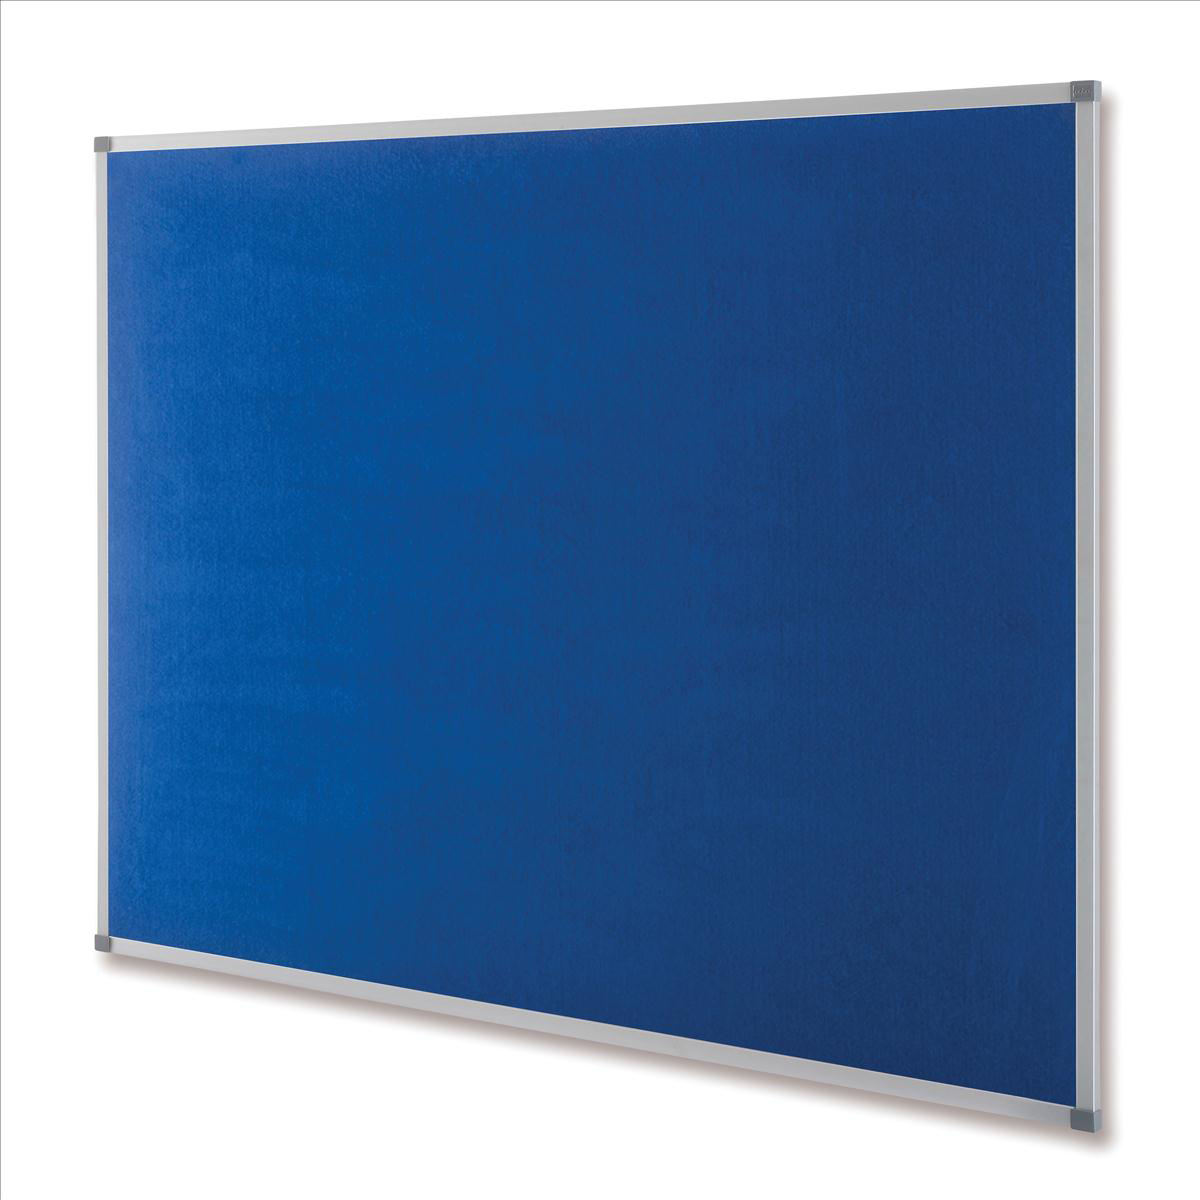 Nobo Classic Noticeboard Felt with Aluminium Frame W900xH600mm Blue Ref 1900915